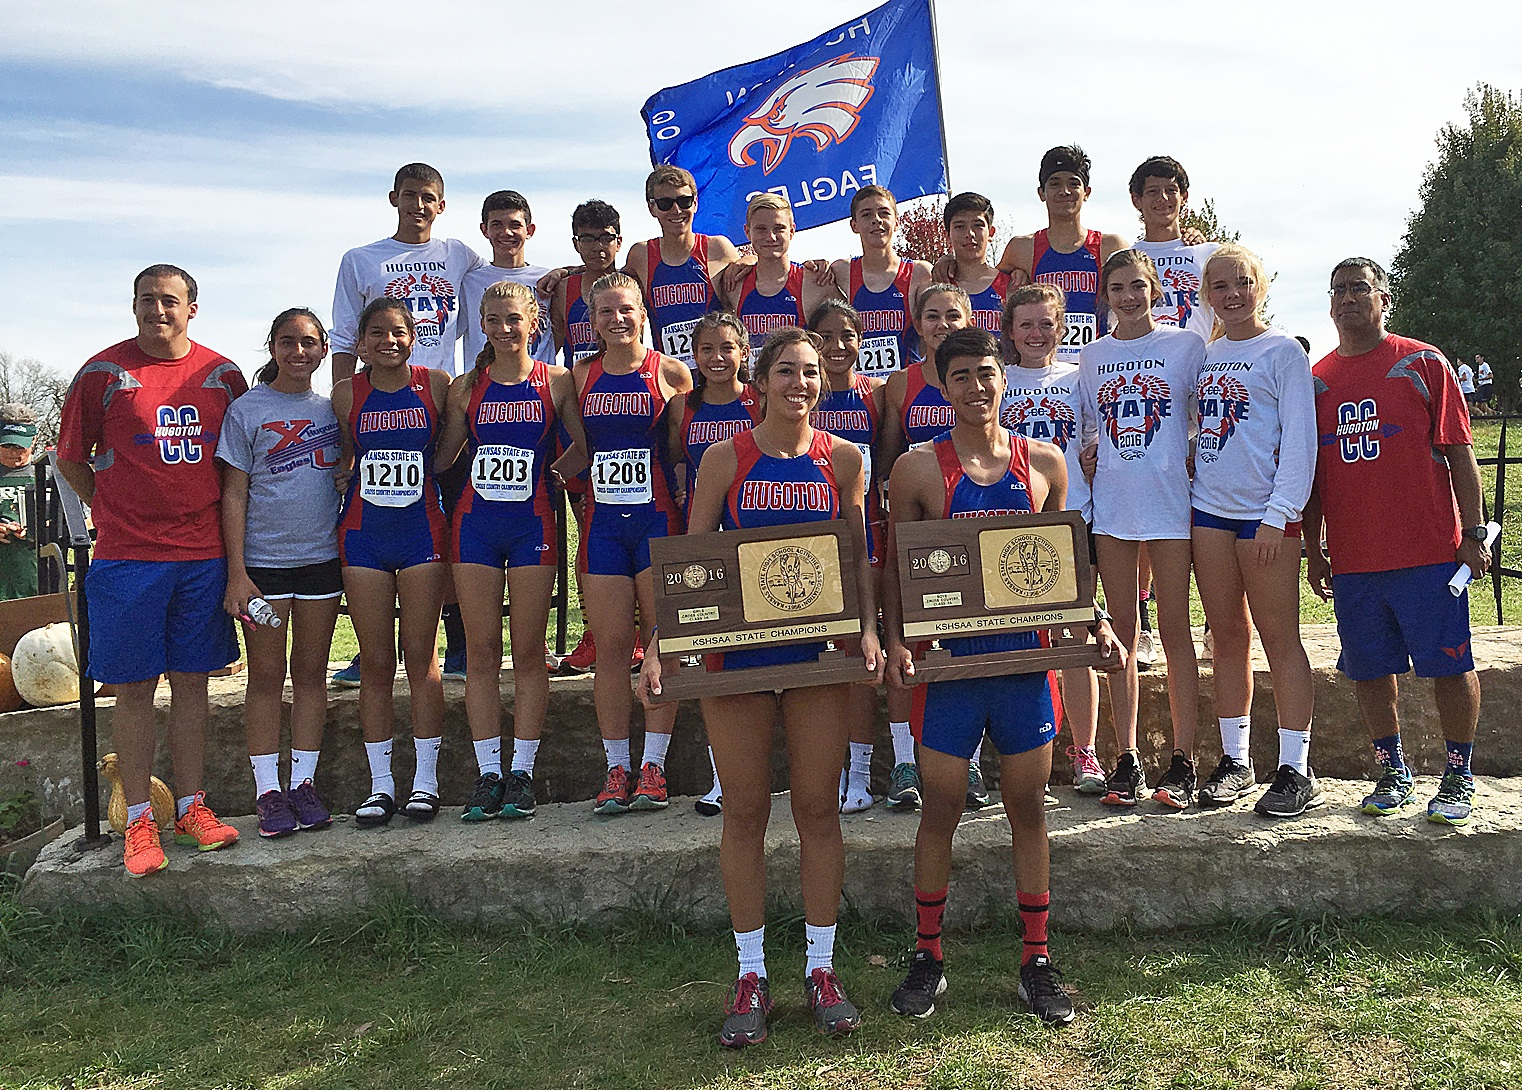 Hugoton High School's cross country teams celebrate their incredible victory at the State meet this past Saturday, October 29 at Rim Rock Farms in Lawrence. The boys' team won first with three top ten finishers: Miguel Martinez in third, Abraham  Garcia in fourth and Ethan Fox in ninth. For the girls' side, Abby Heger raced to a sixth place finish to place in the top ten for HHS. Coaches Nick Rodriguez and Nik Barre report the team executed their race plans perfectly and the staff was very proud of their accomplishments this season: GWAC League Champions, Regional Champions, and now 3A State  Champions! Team members include: holding the trophies, Katy Heger and Miguel Martinez; front row, Coach Nik Barre, Kara Rodriguez, Luz Romo, Frances Gaskill, Rebecca Johnson, Cielo  Garcia, Victoria Duran, Abby Heger, Hanna Coziah, Breckyn Hertel, McKnzie Hagman and Coach Nick Rodriguez; back row, Rodrigo Sanchez, Jorge Encinez, Bryan Gonzales, Eric Perry, Ethan Fox, Abraham Garcia, Jahaziel Garcia, Ivan Villa and Damian Lewis. Congratulations to Hugoton's most awesome HHS Cross Country Team!